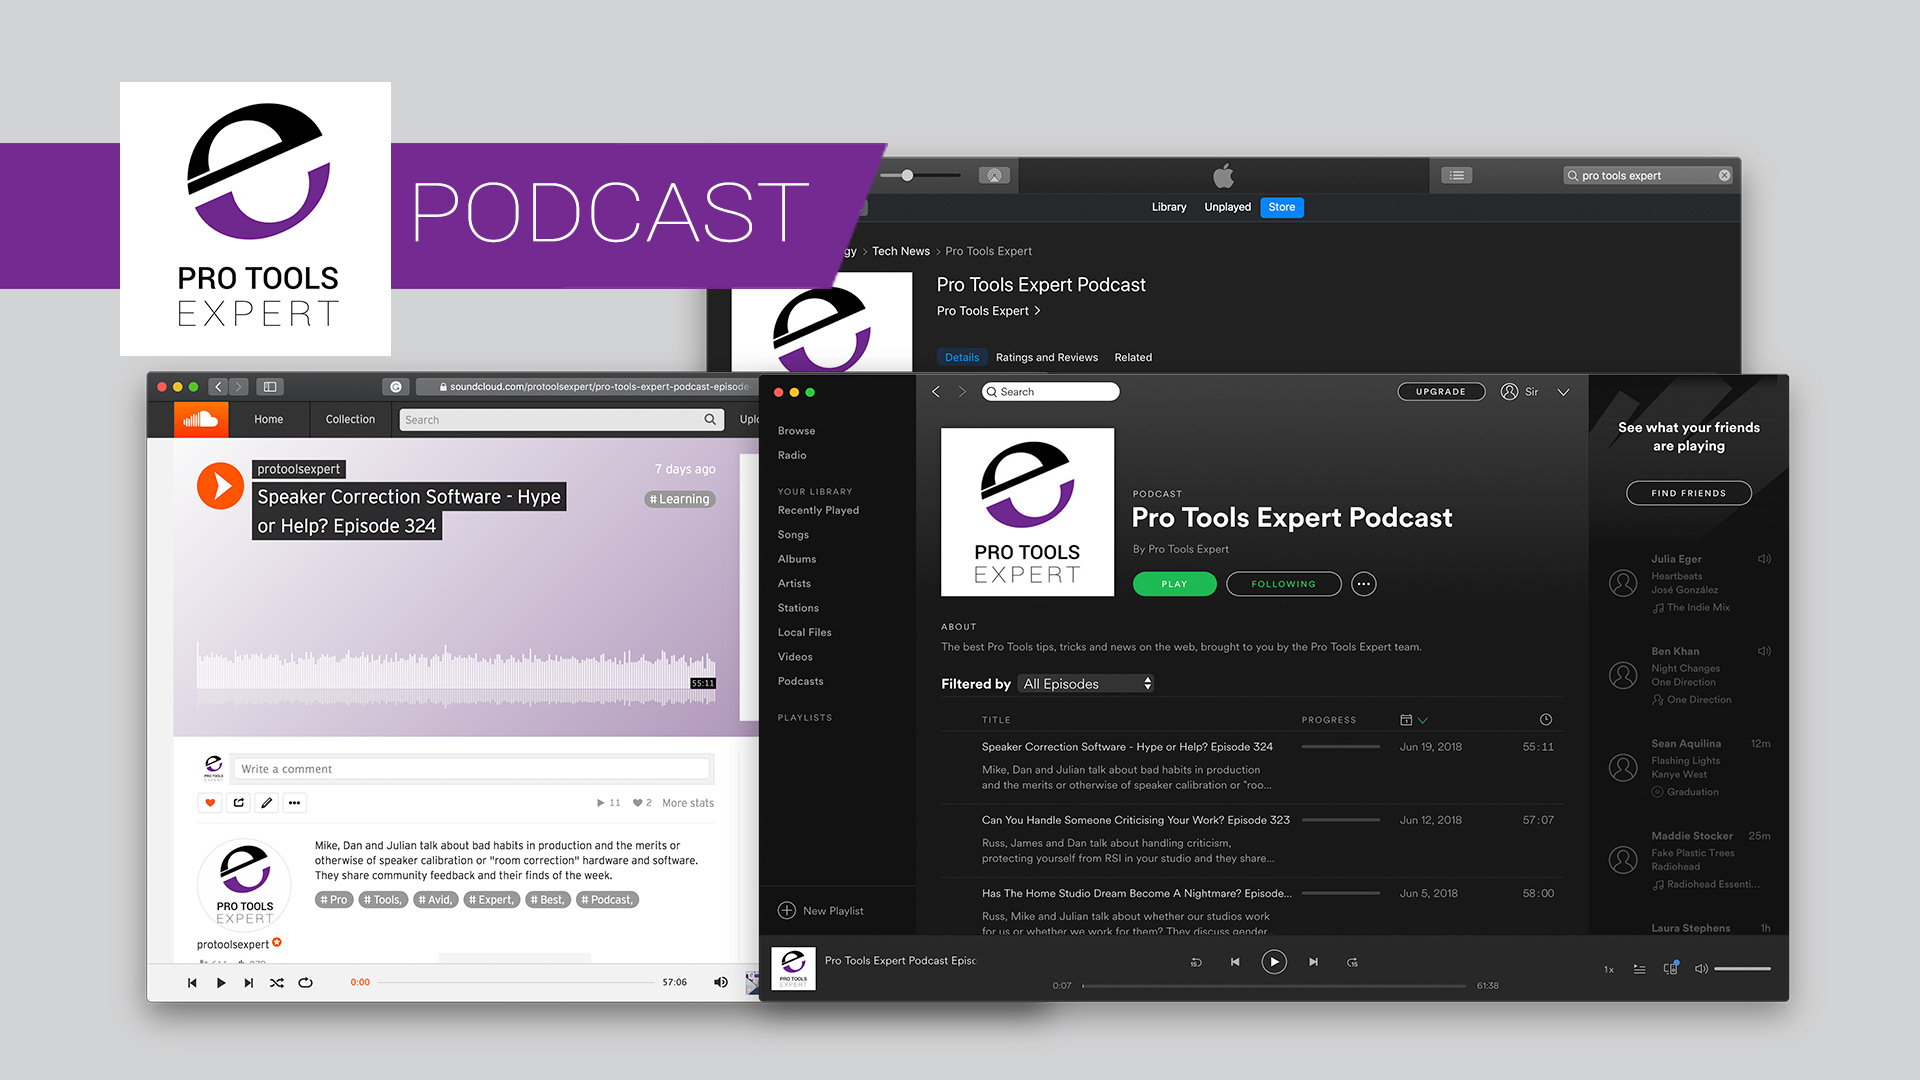 Pro-Tools-Expert-Podcast-On-iTunes,-Spotify-And-Soundcloud.jpg